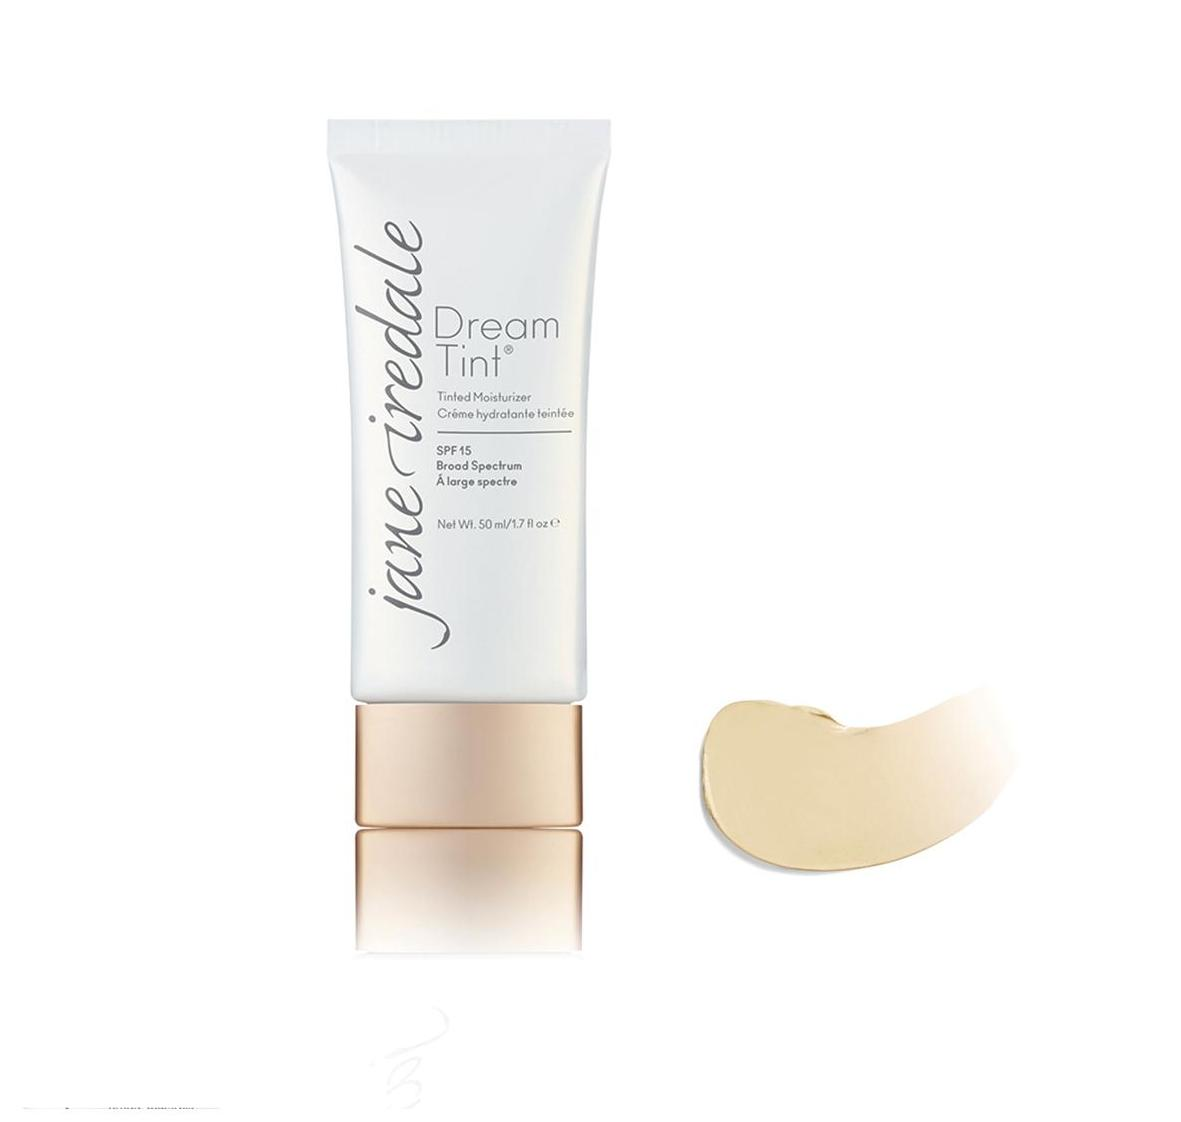 Jane Iredale FOUNDATIONS Dream Tint Light